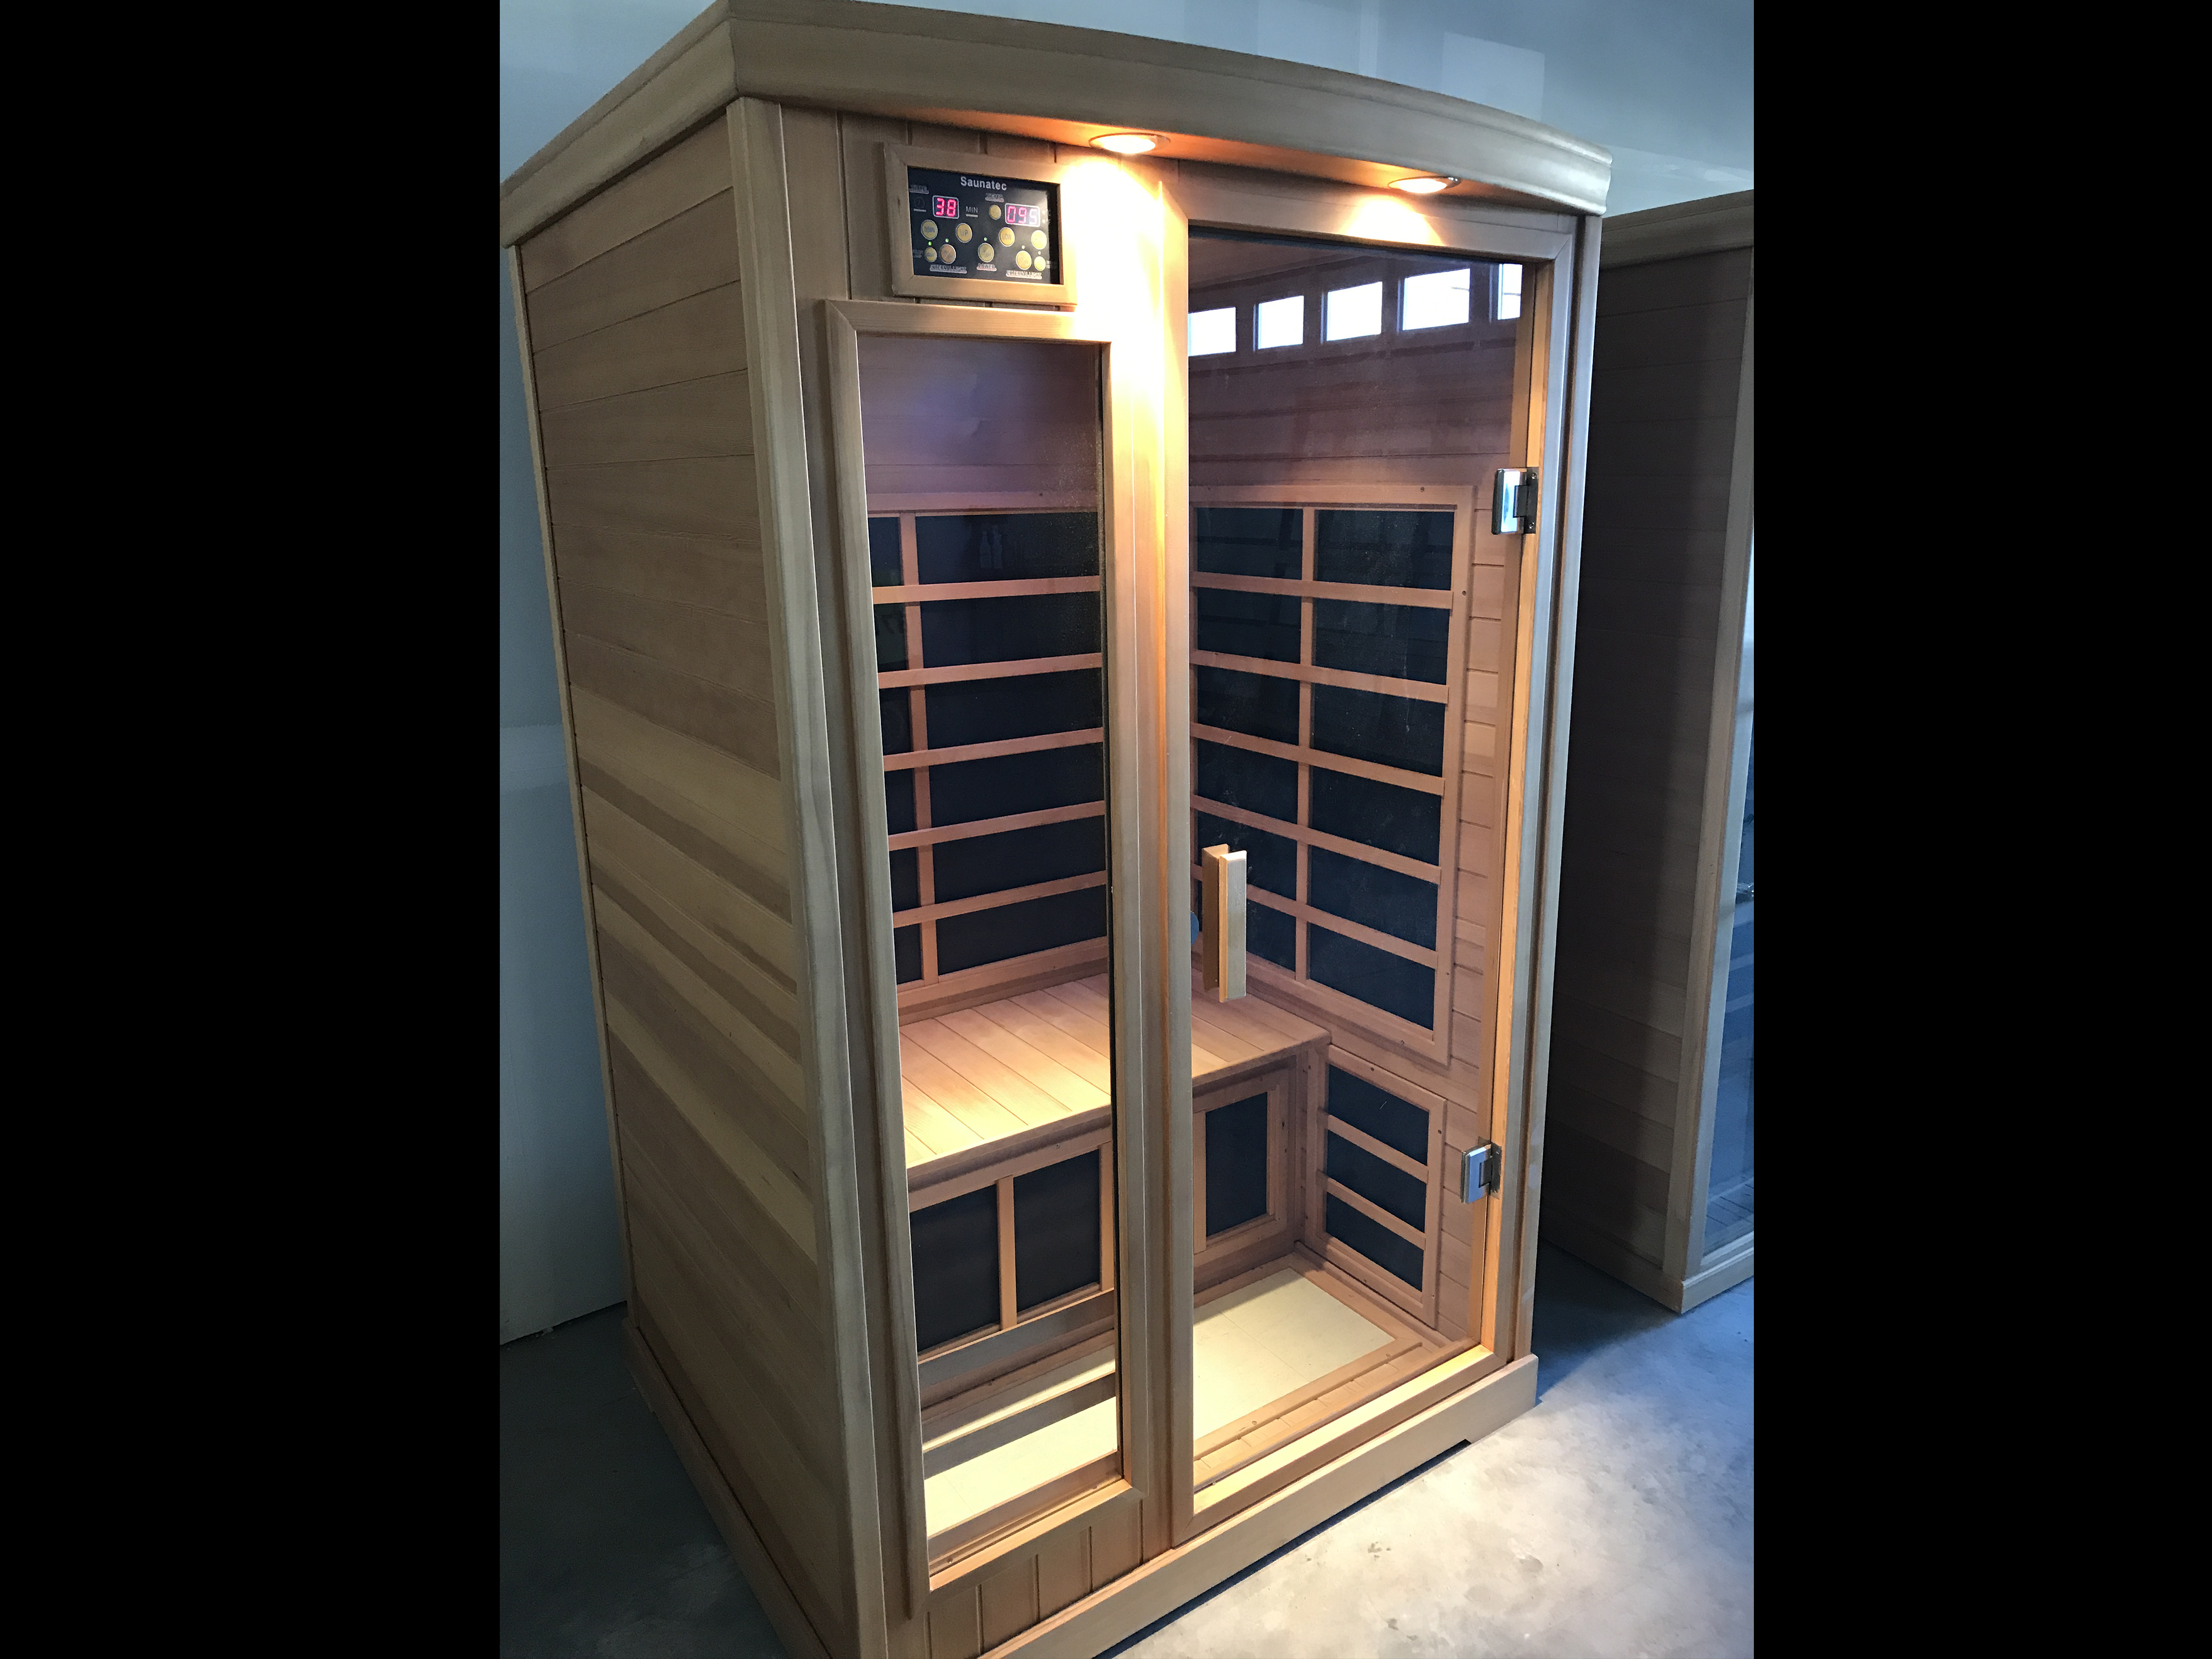 $1895 - B200 Infrared Sauna Room Family Image